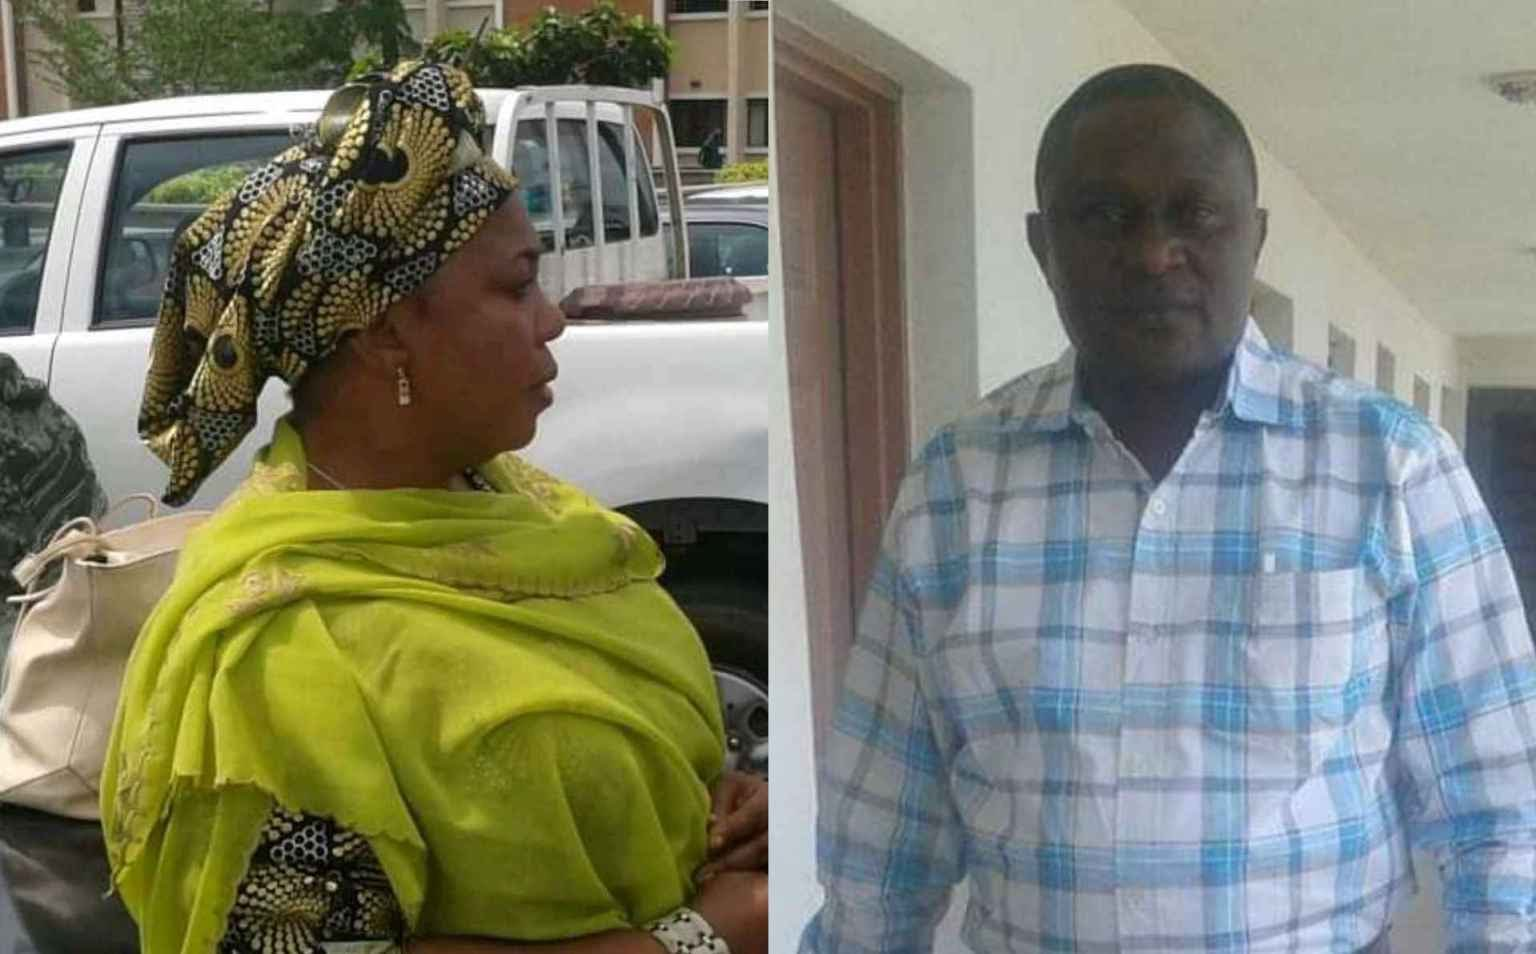 Trial Of Alleged N100m Kwara Bursary Scam Adjourned Due To Counsel's Absence In Court docket